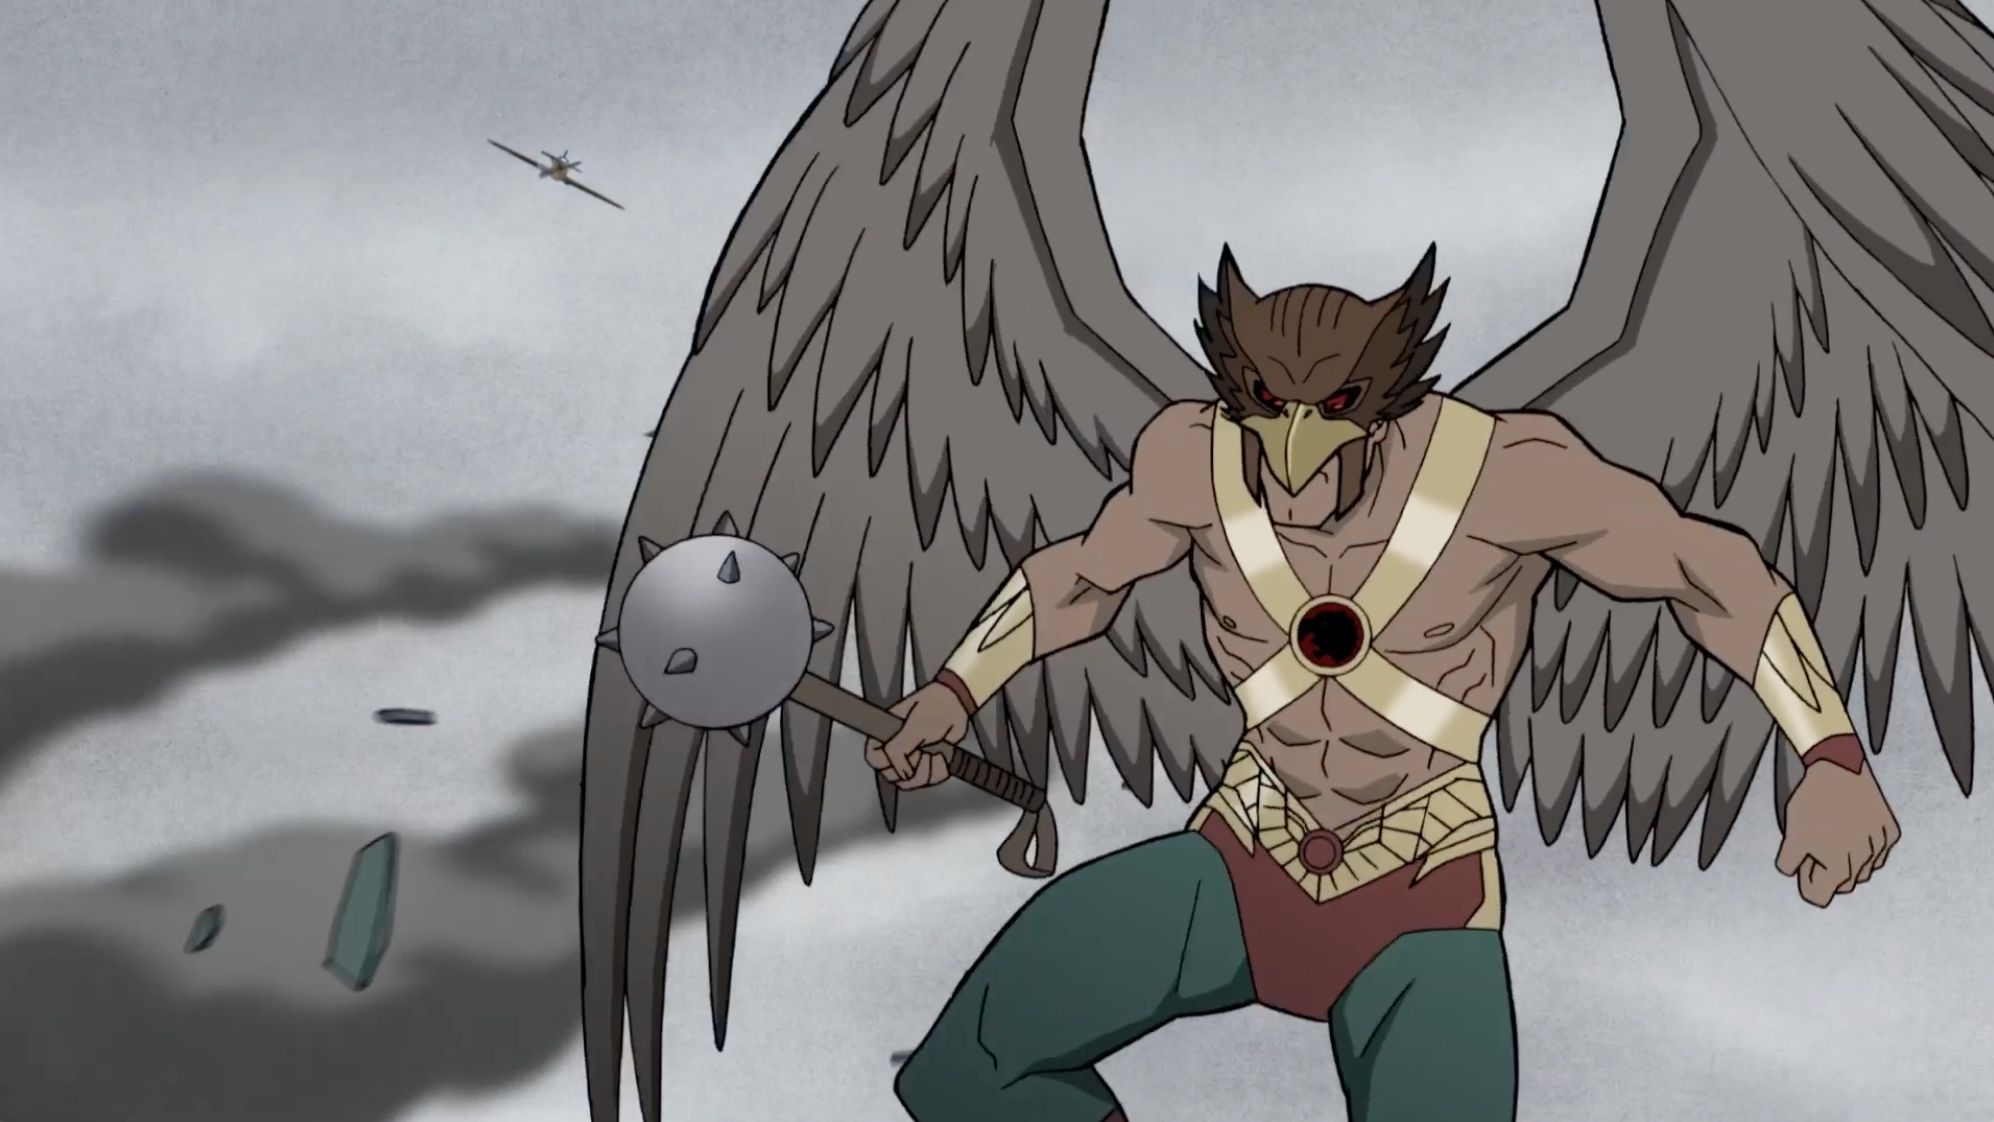 Image de Hawkman dans le film d'animation Justice Society : World War II